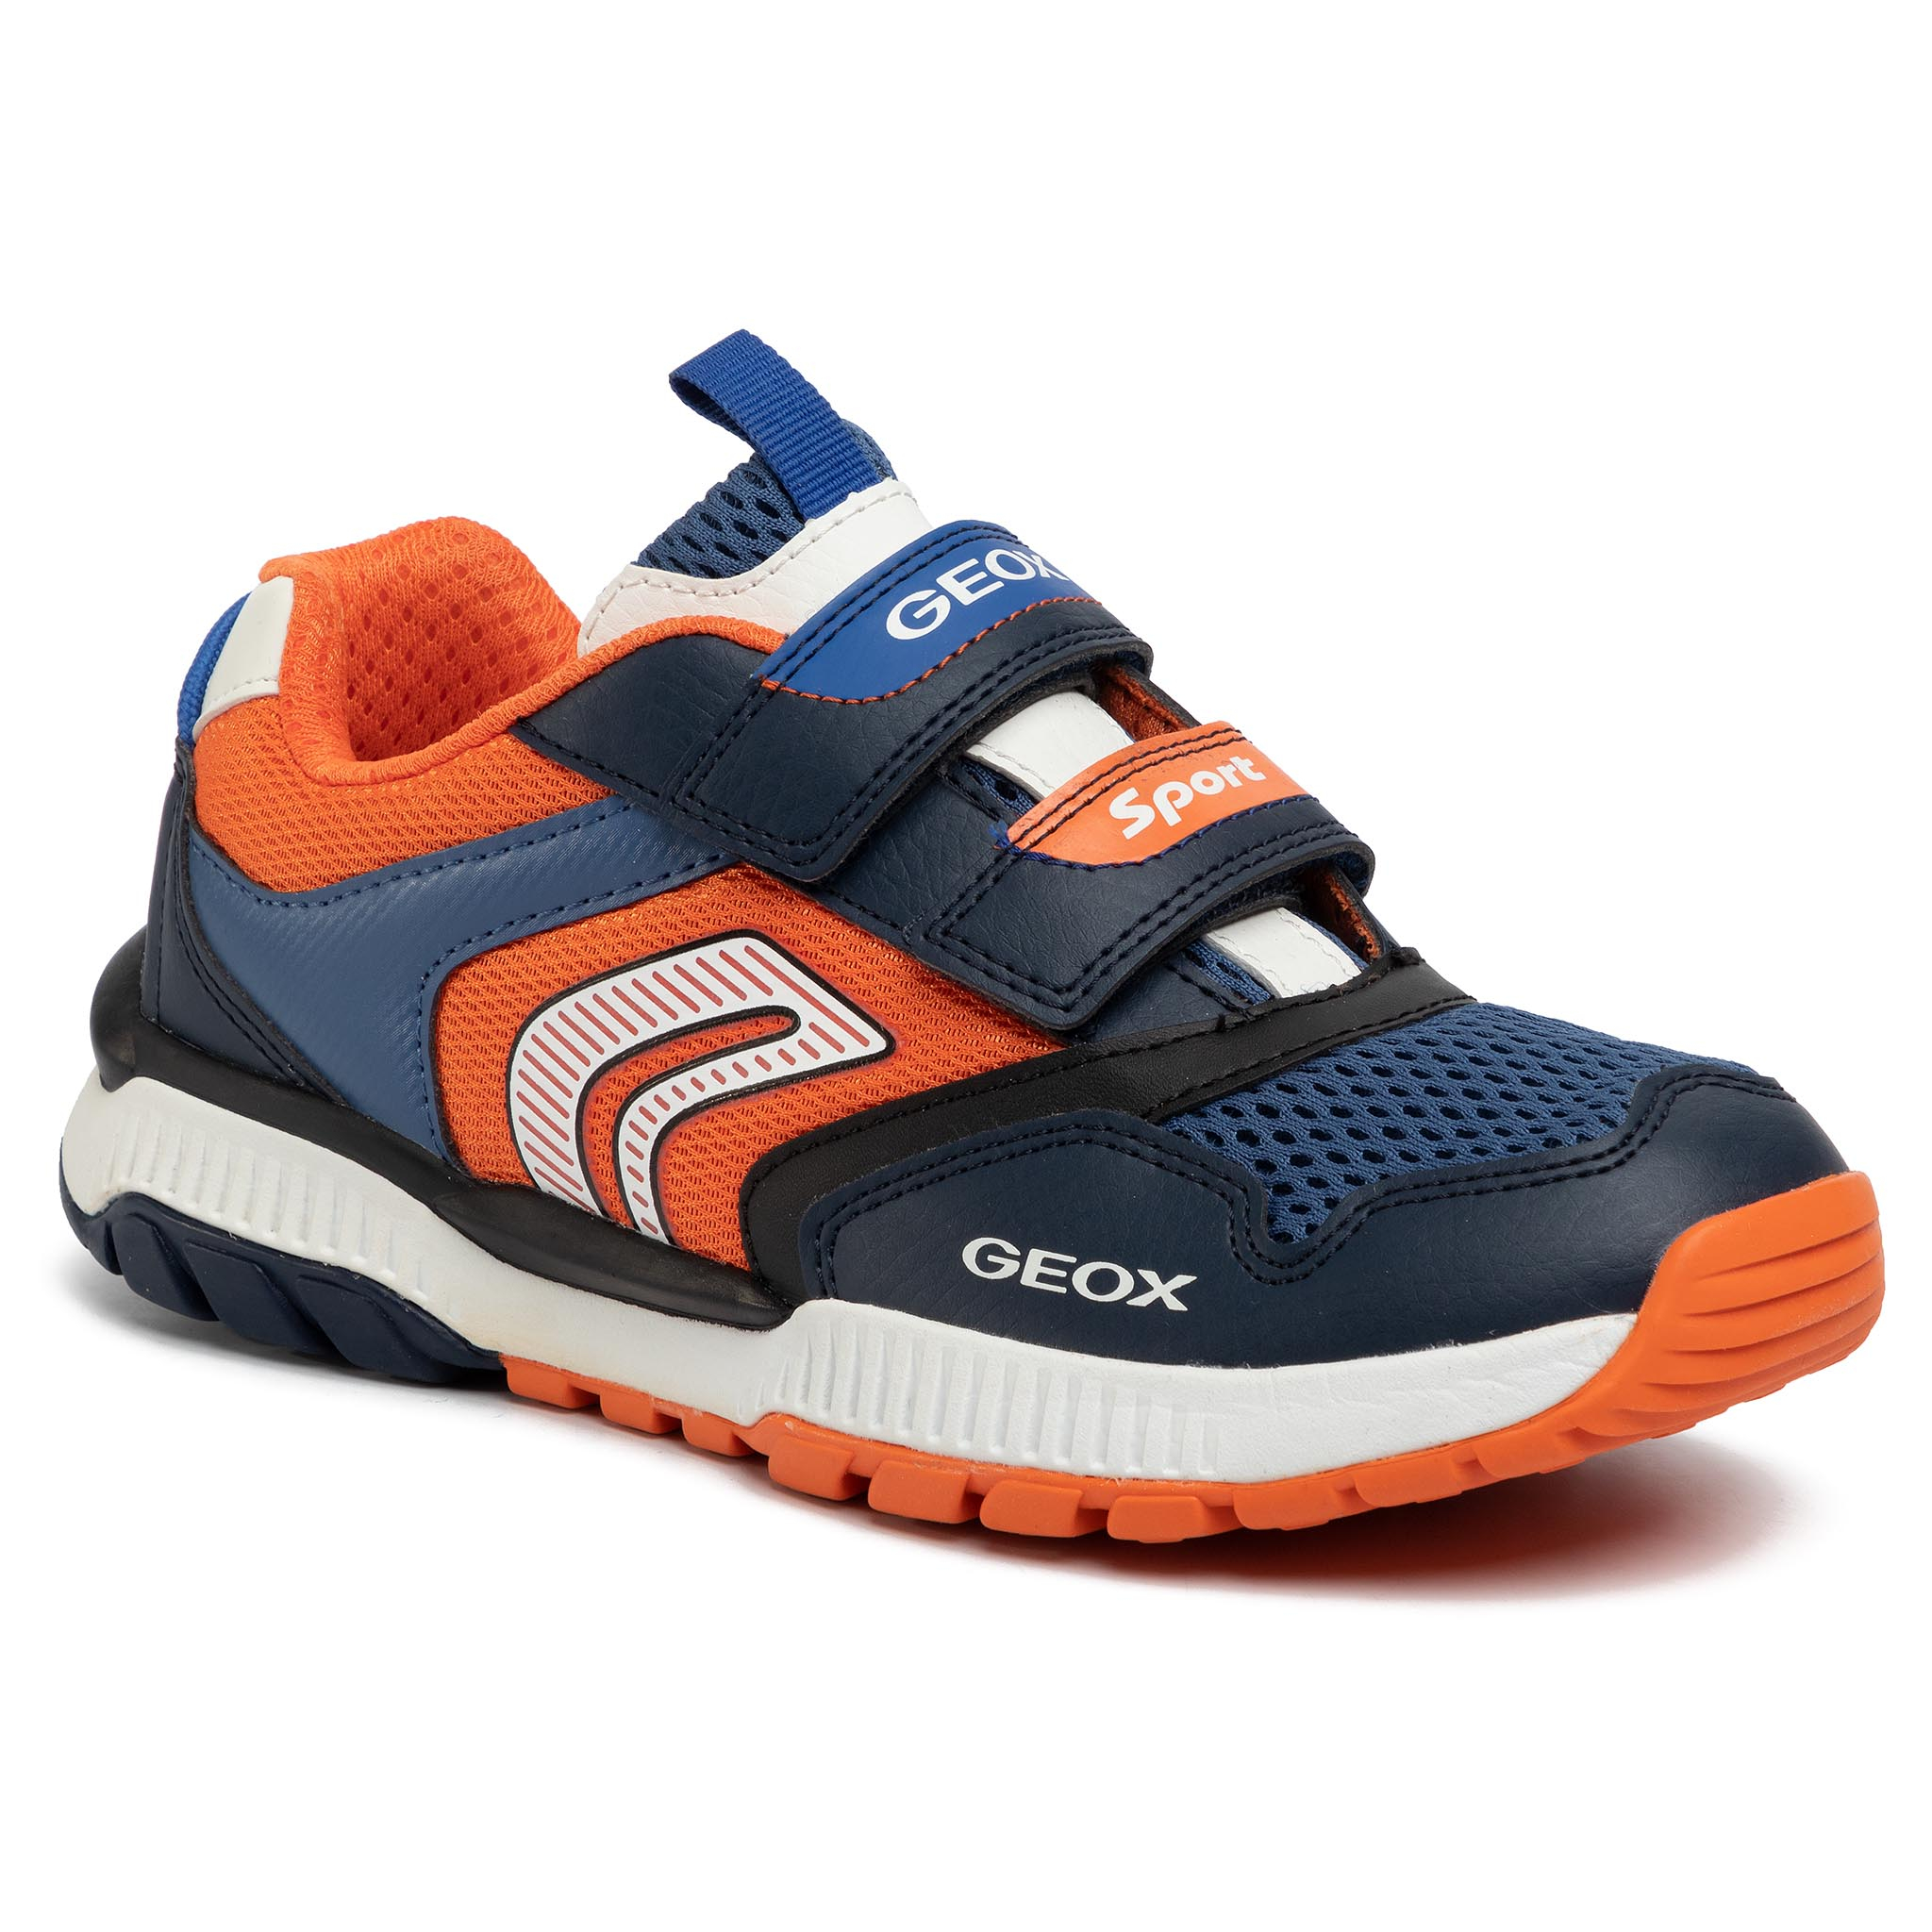 Sneakers GEOX - J Tuono B.A J02AXA 014BU C0659 D Navy/Orange